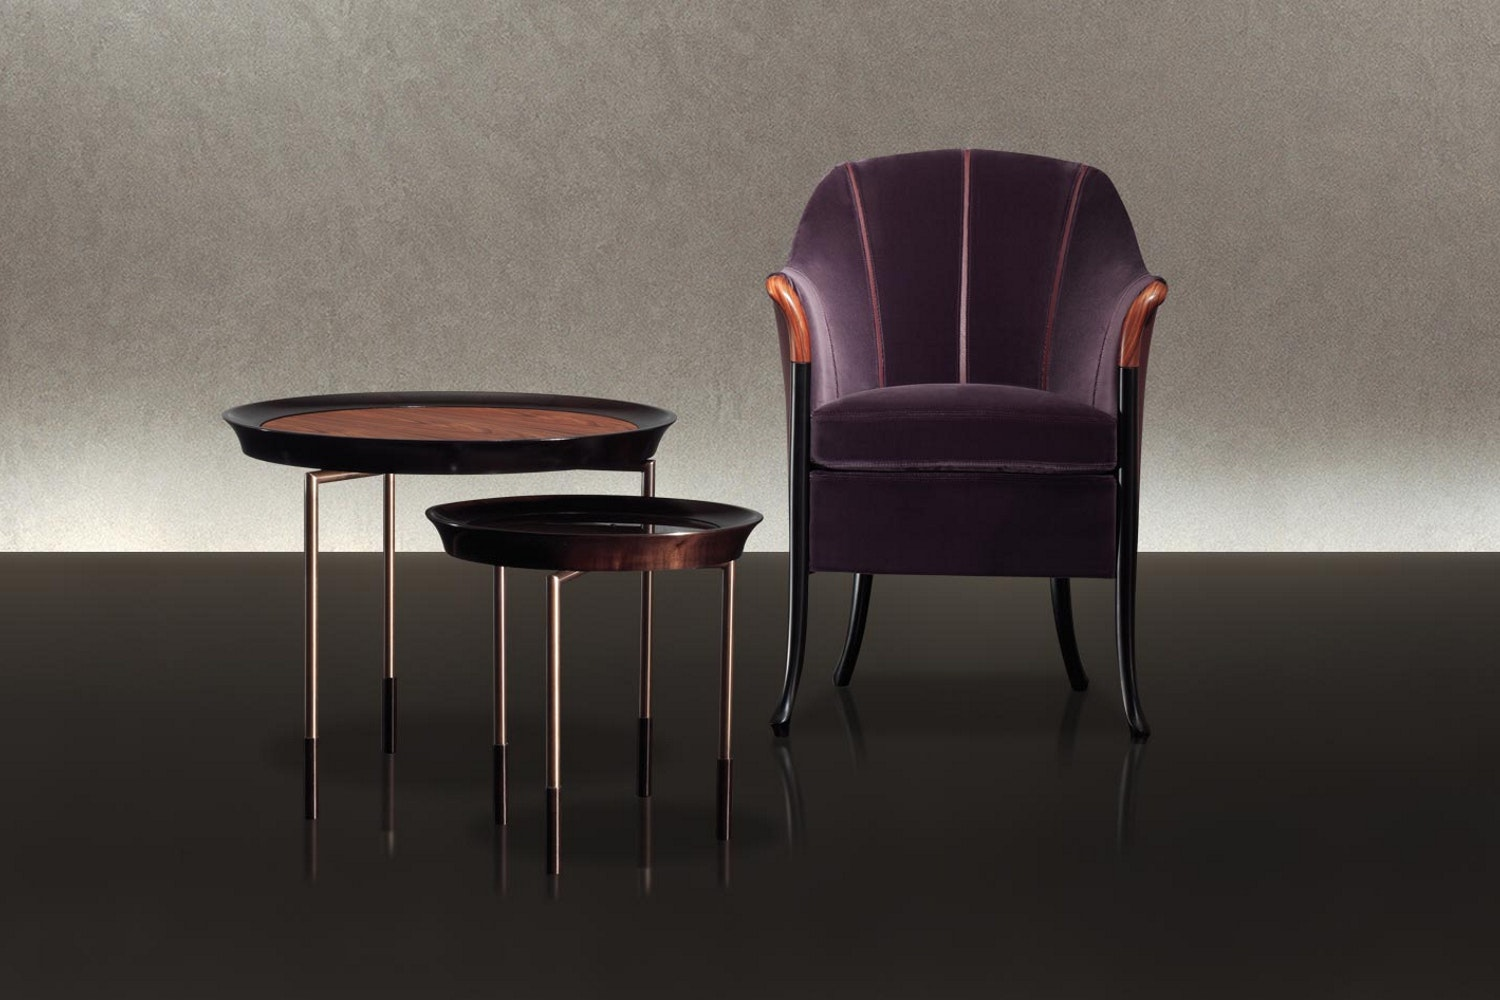 Athene Side Table by Antonello Mosca for Giorgetti